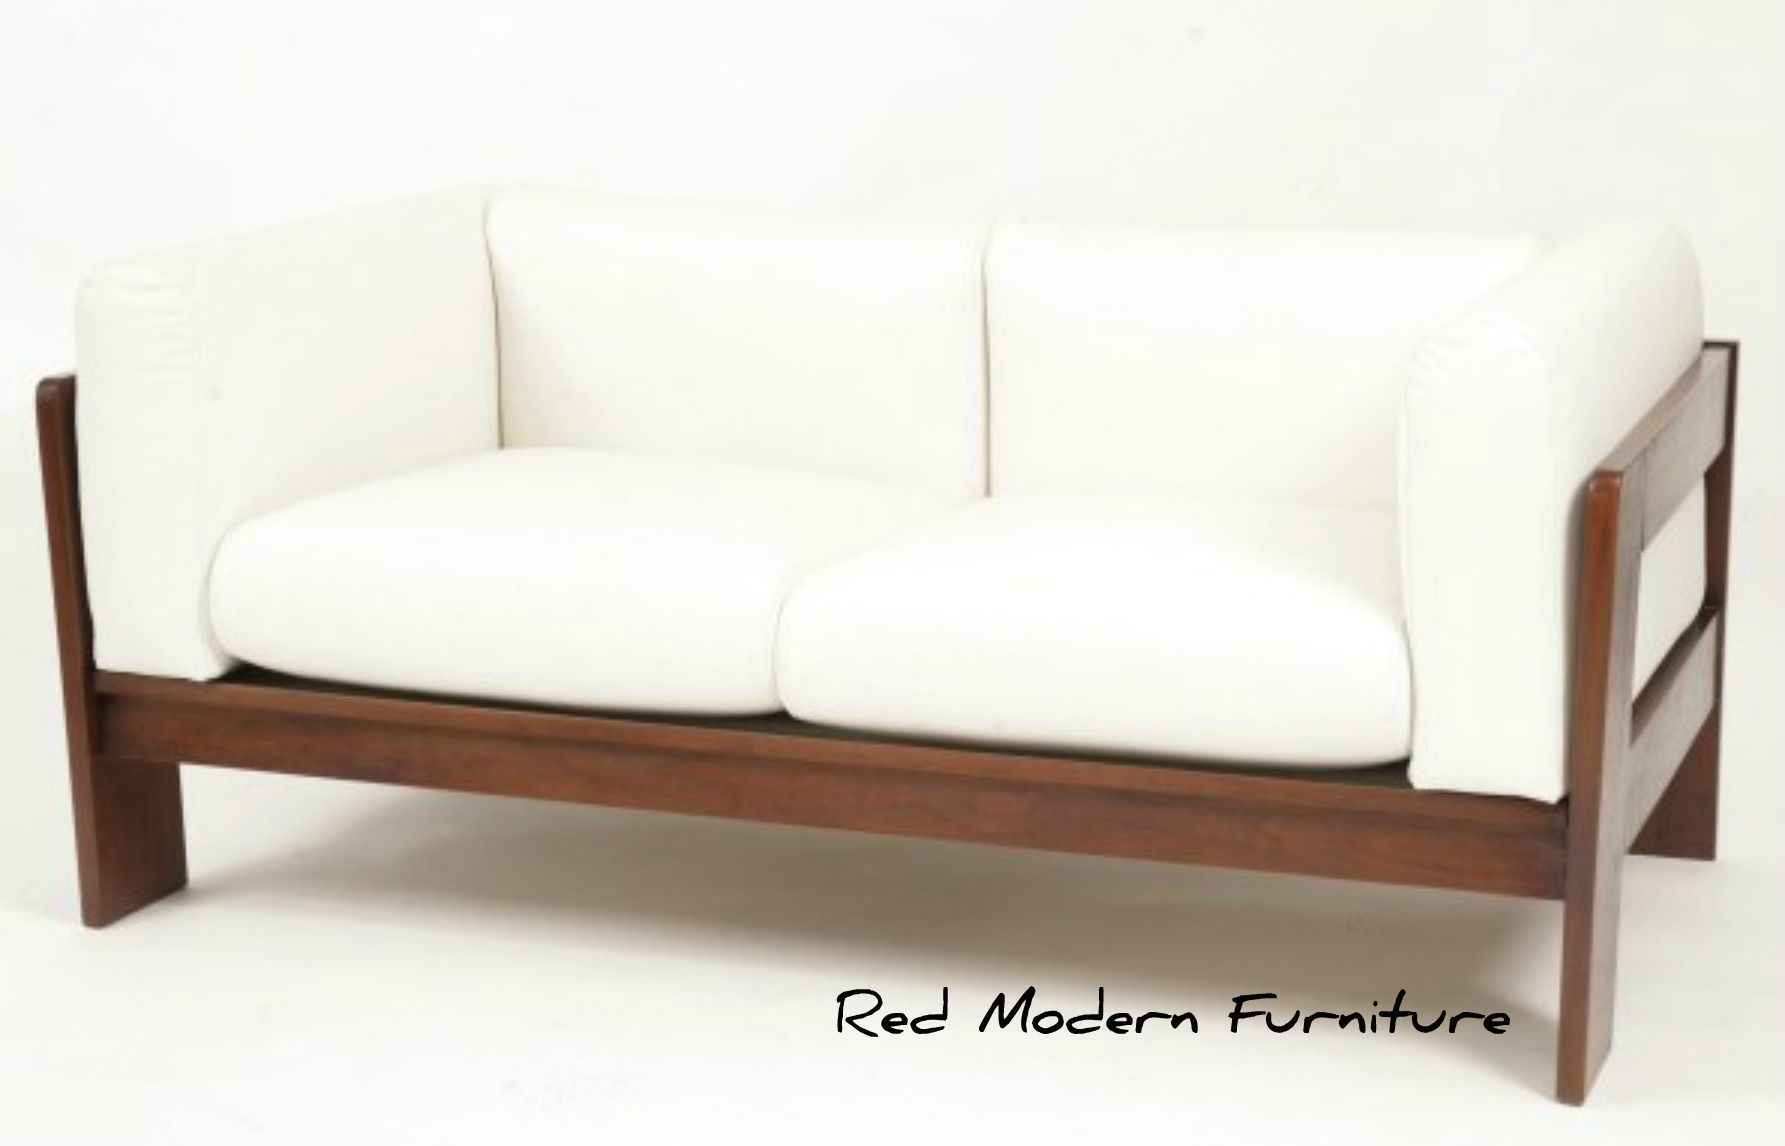 Leather sofa courtney out loud - Sleek sofas small spaces decor ...